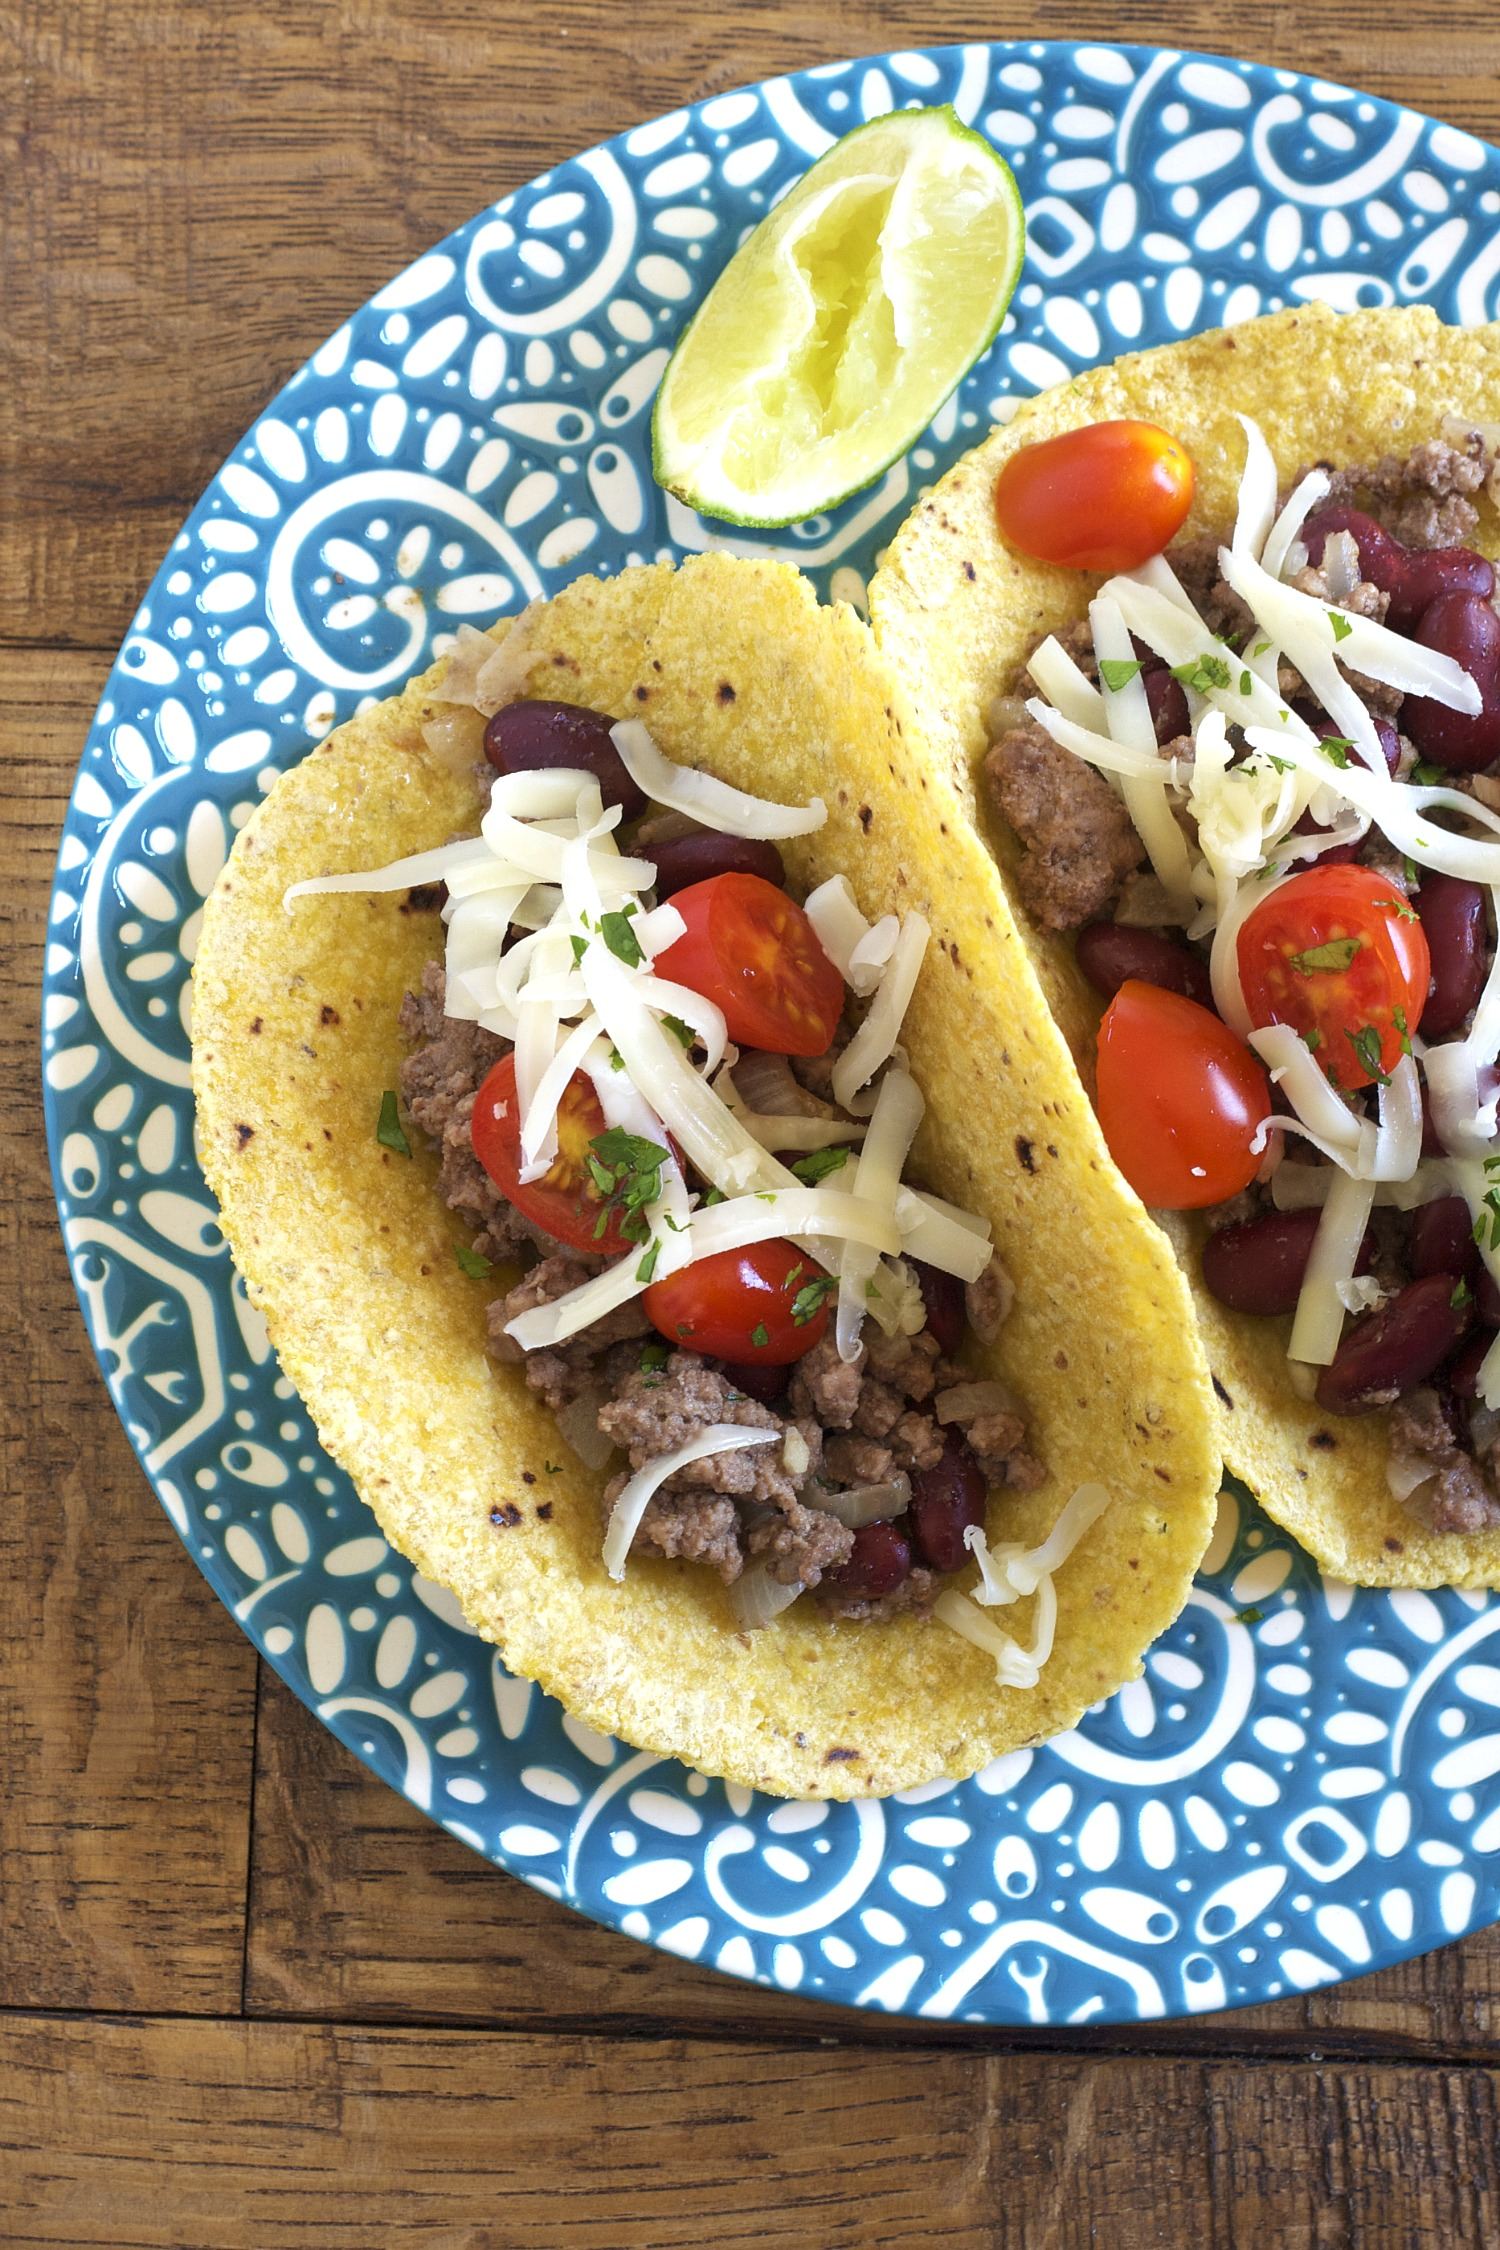 Stretch your real food budget by adding beans to your beef in these beef tacos!